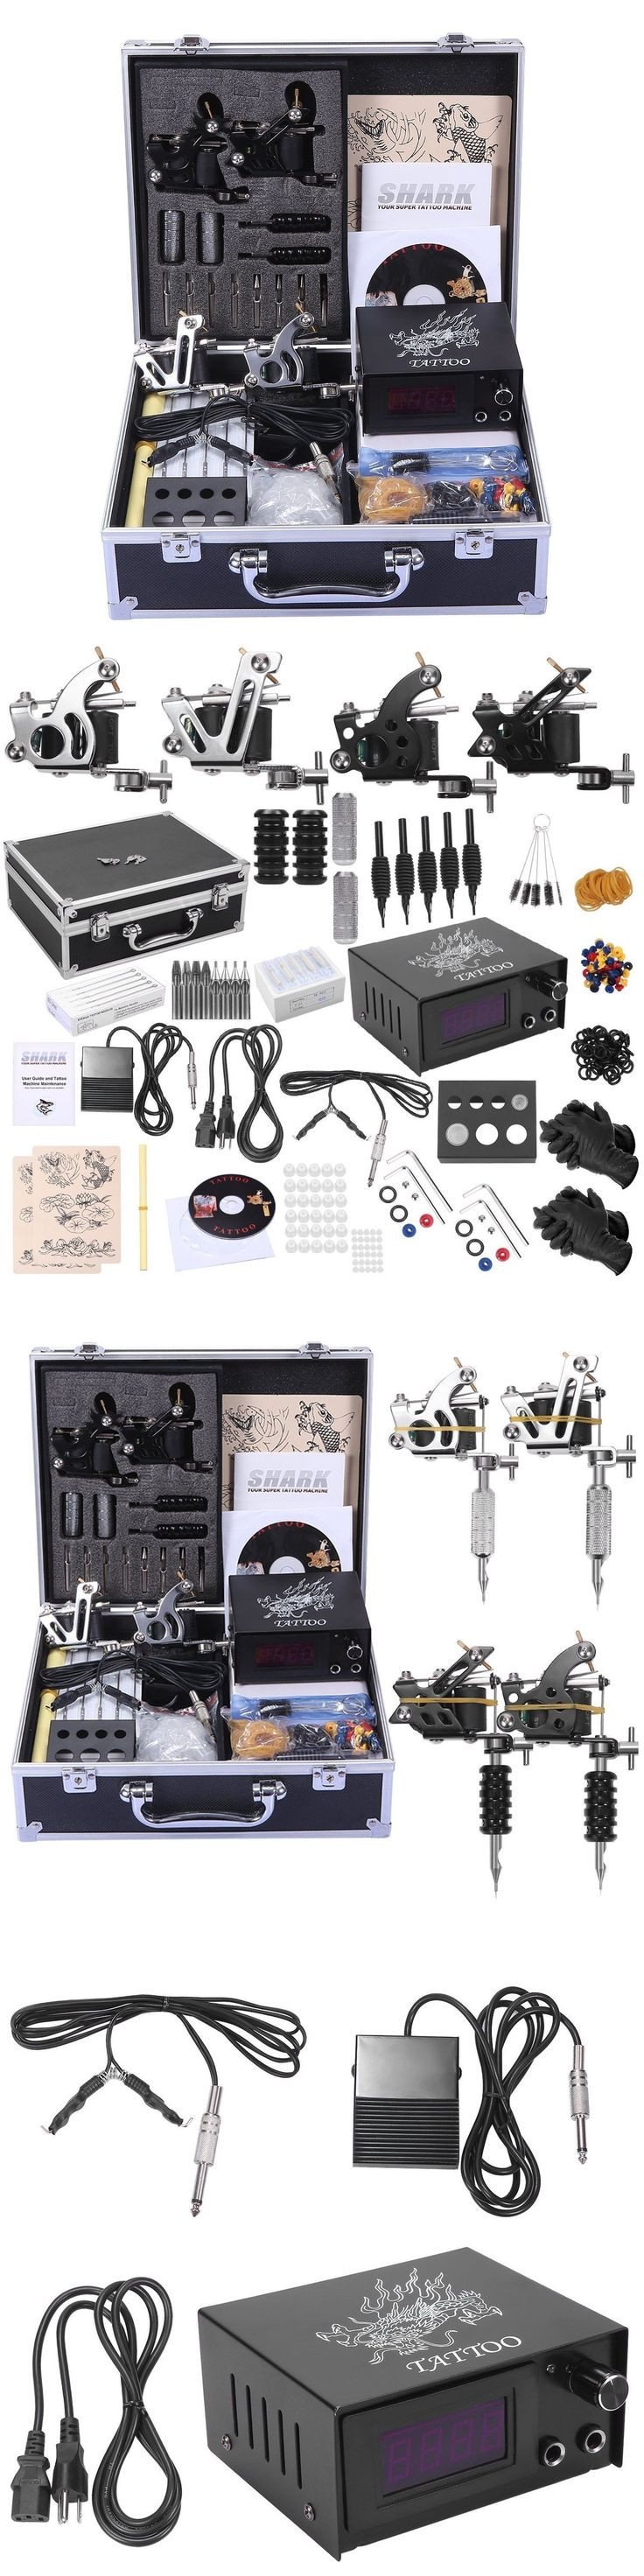 Tattoo Complete Kits: Shark Professional Tattoo Kit 4 Machines Gun Carry Case Key Power Supply New -> BUY IT NOW ONLY: $77.56 on eBay!